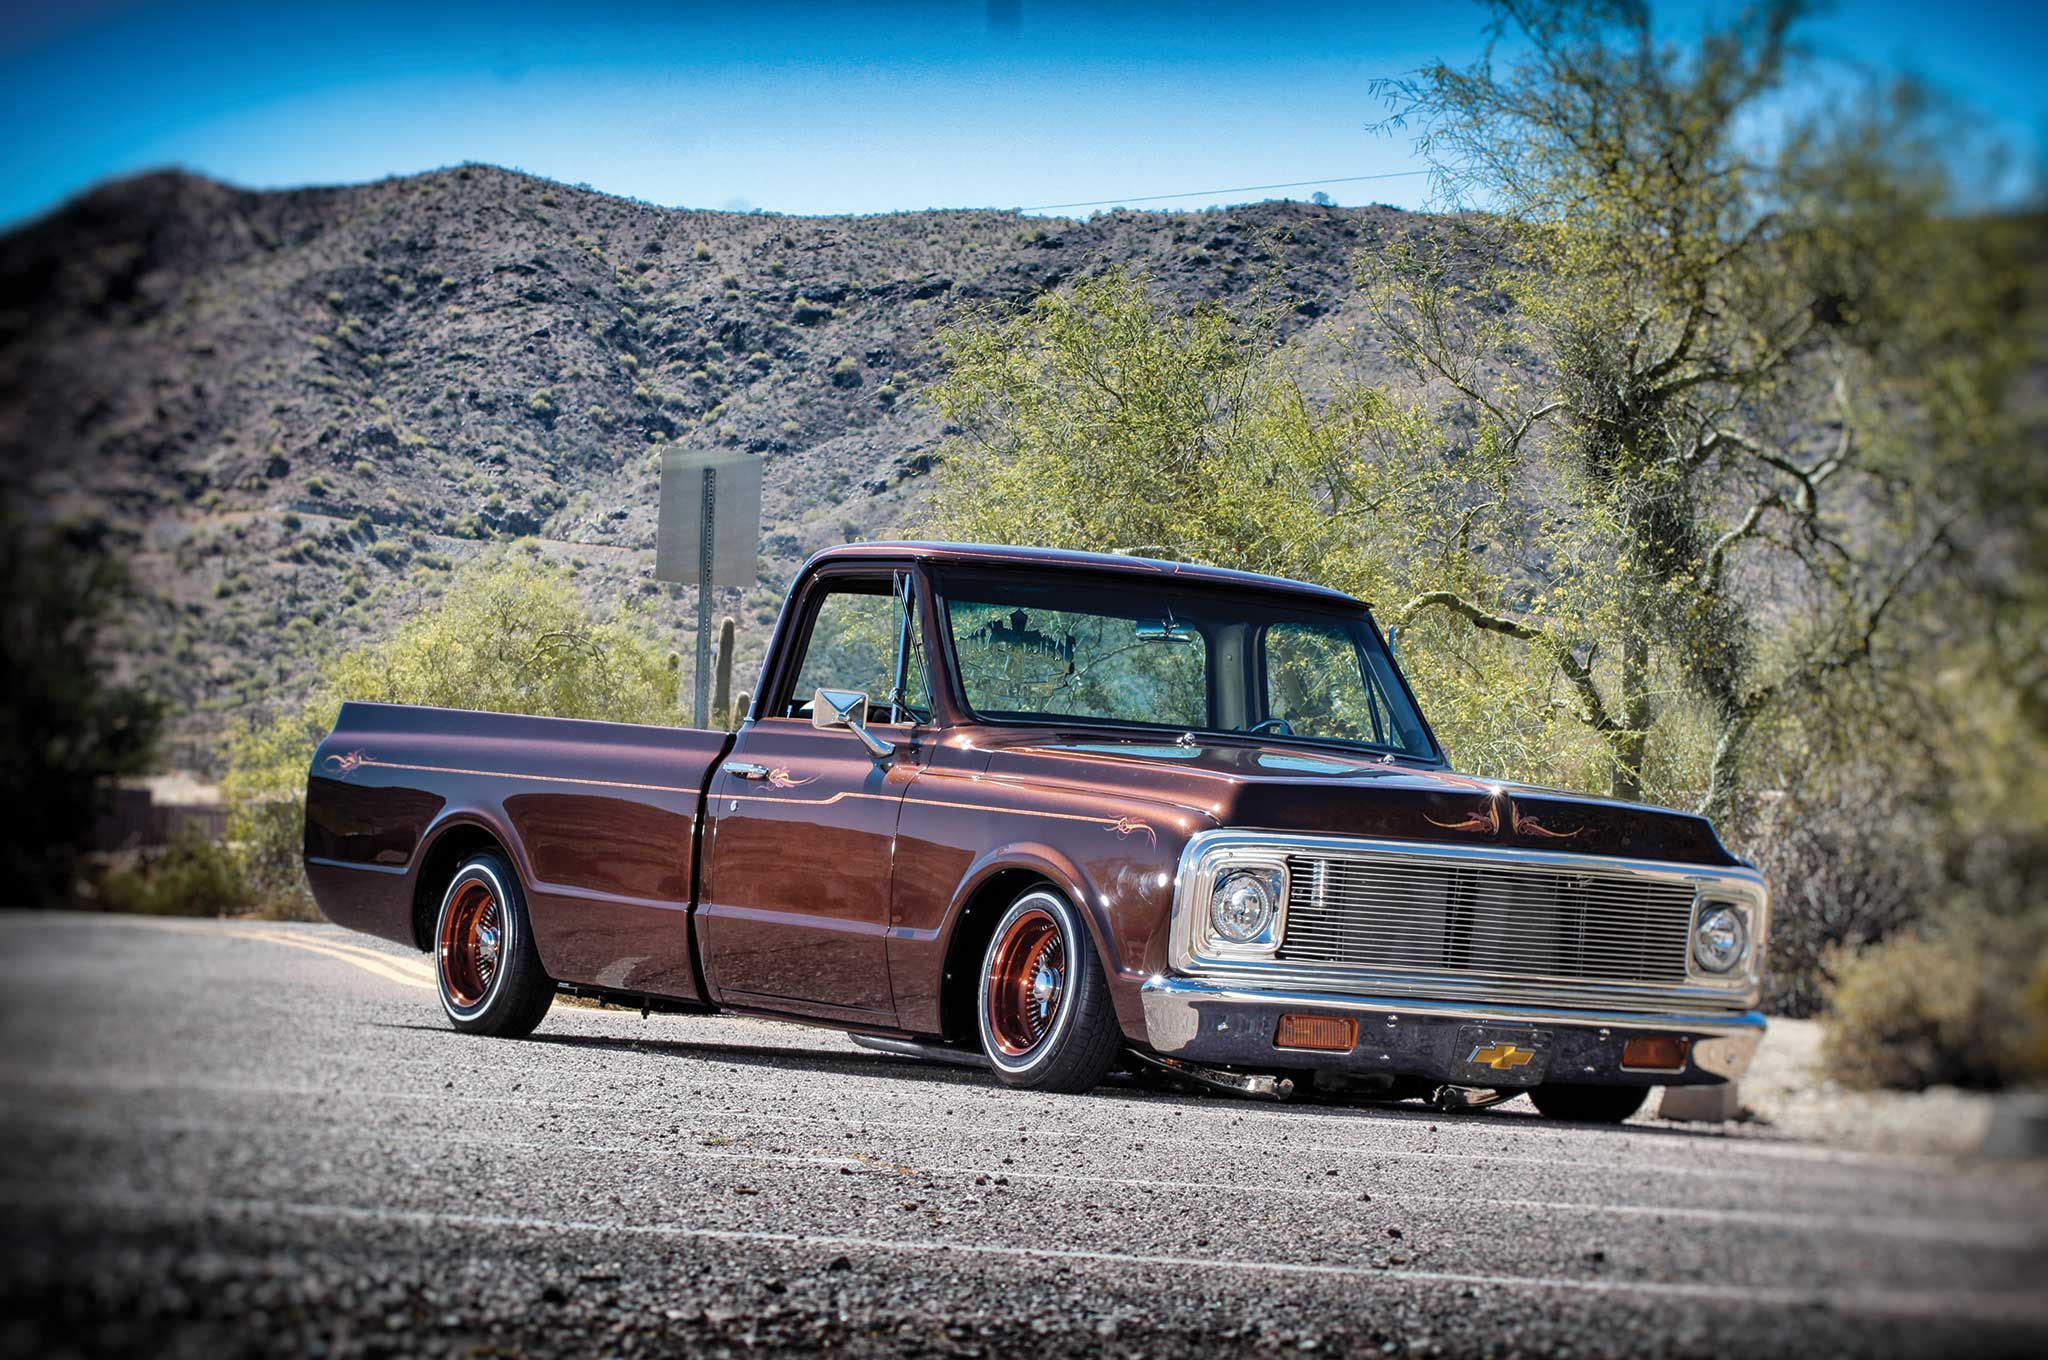 1971 chevrolet c10 oye morena lowrider 1971 Ford Truck see all 13 photos